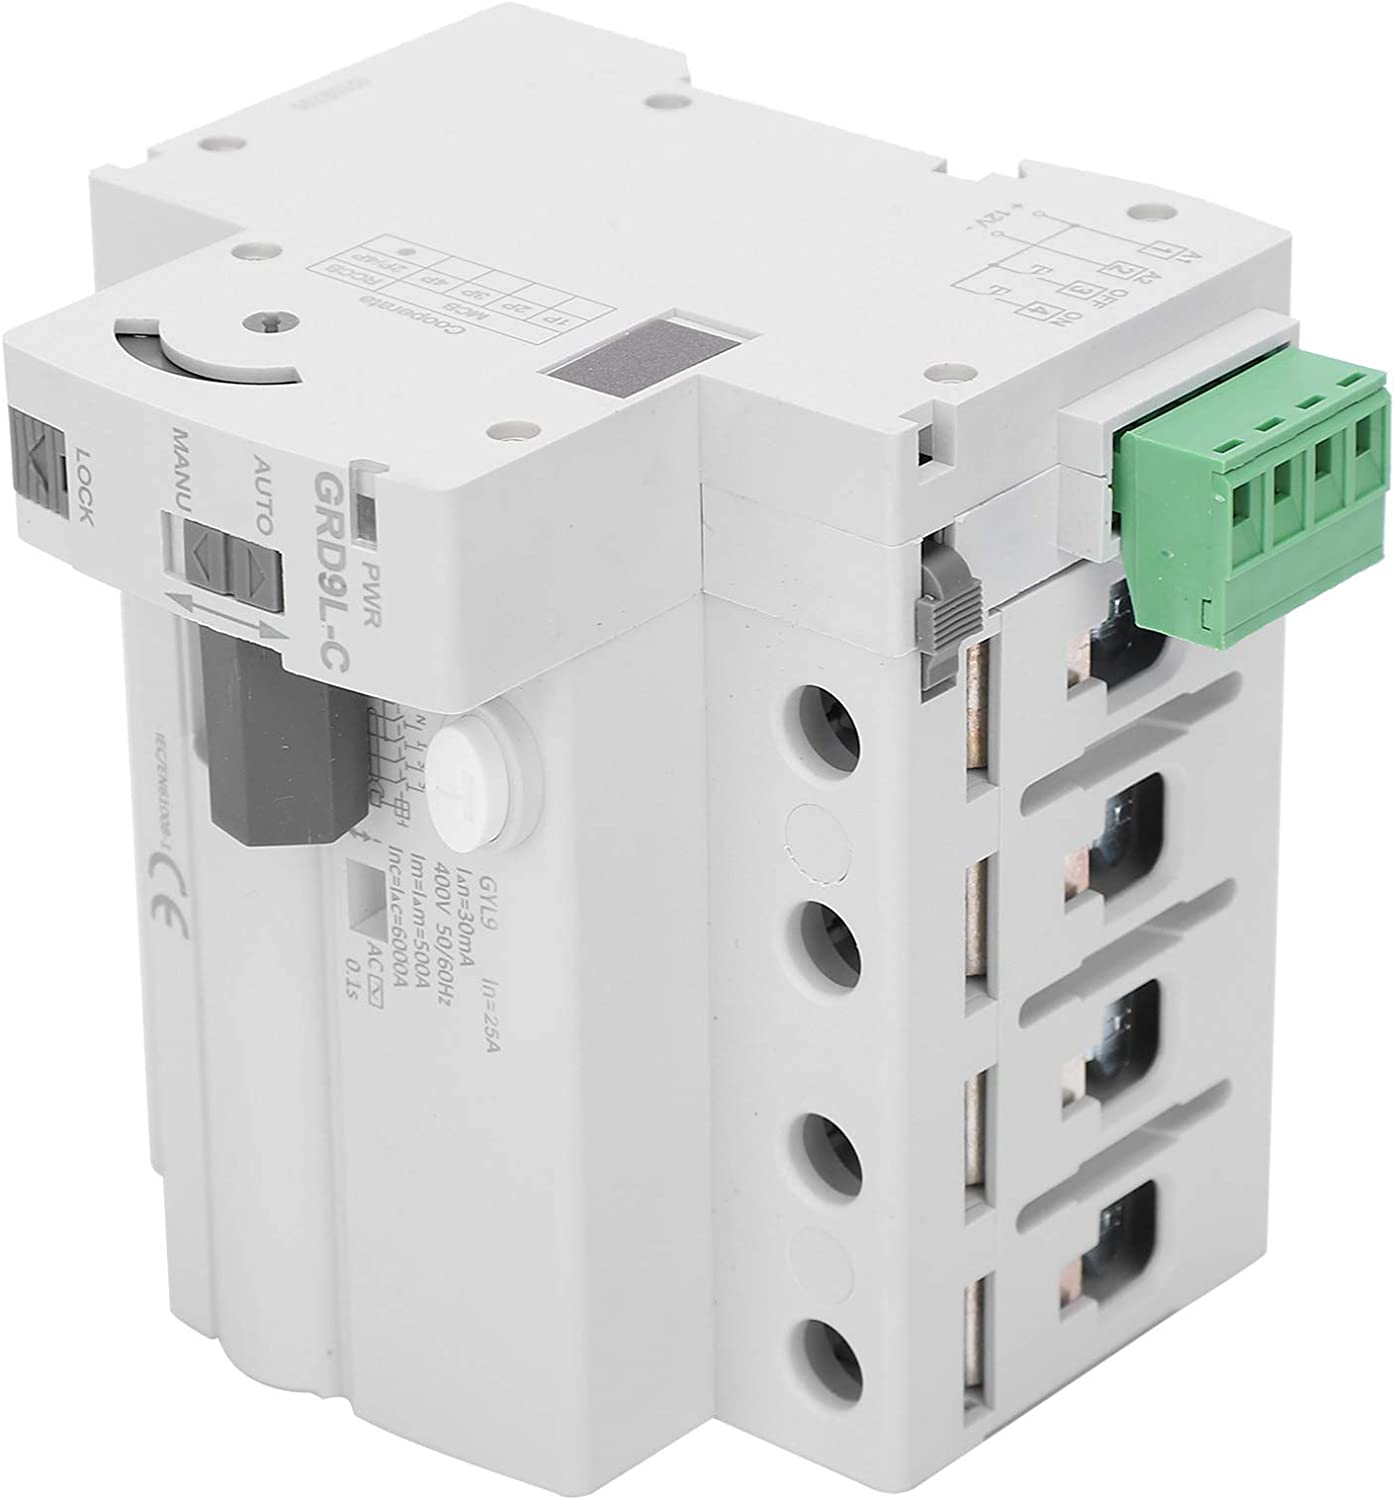 Protective Voltage Protector, Surge Protection Device -10%;+10% -20℃ To+55℃ (-4℉ To 131℉) 400V Abs